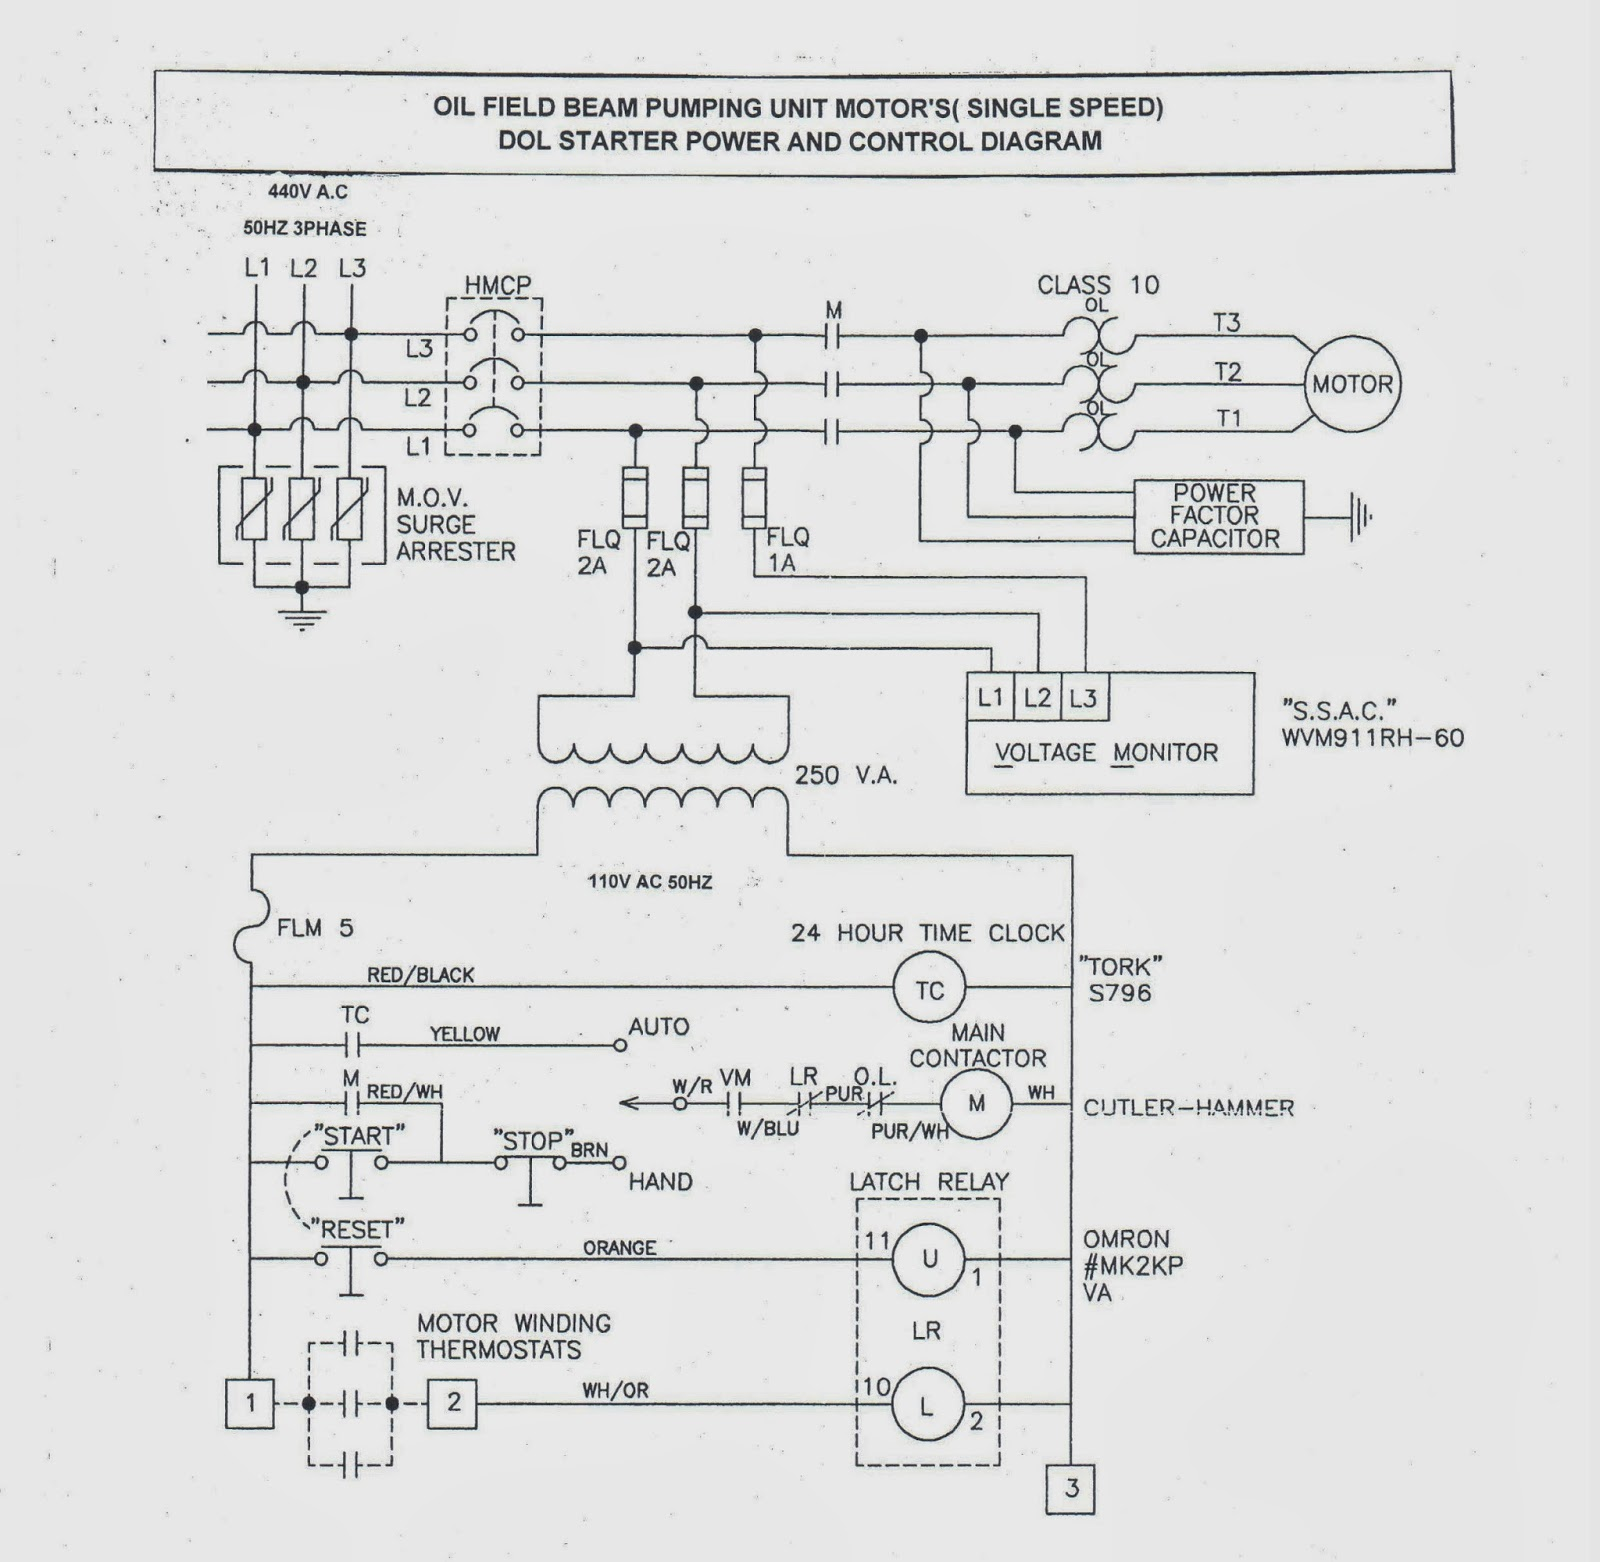 Wiring Diagram Of A Single Phase Dol Starter 2003 Toyota Tacoma Oil Pumping Unit Free Engine Image For User